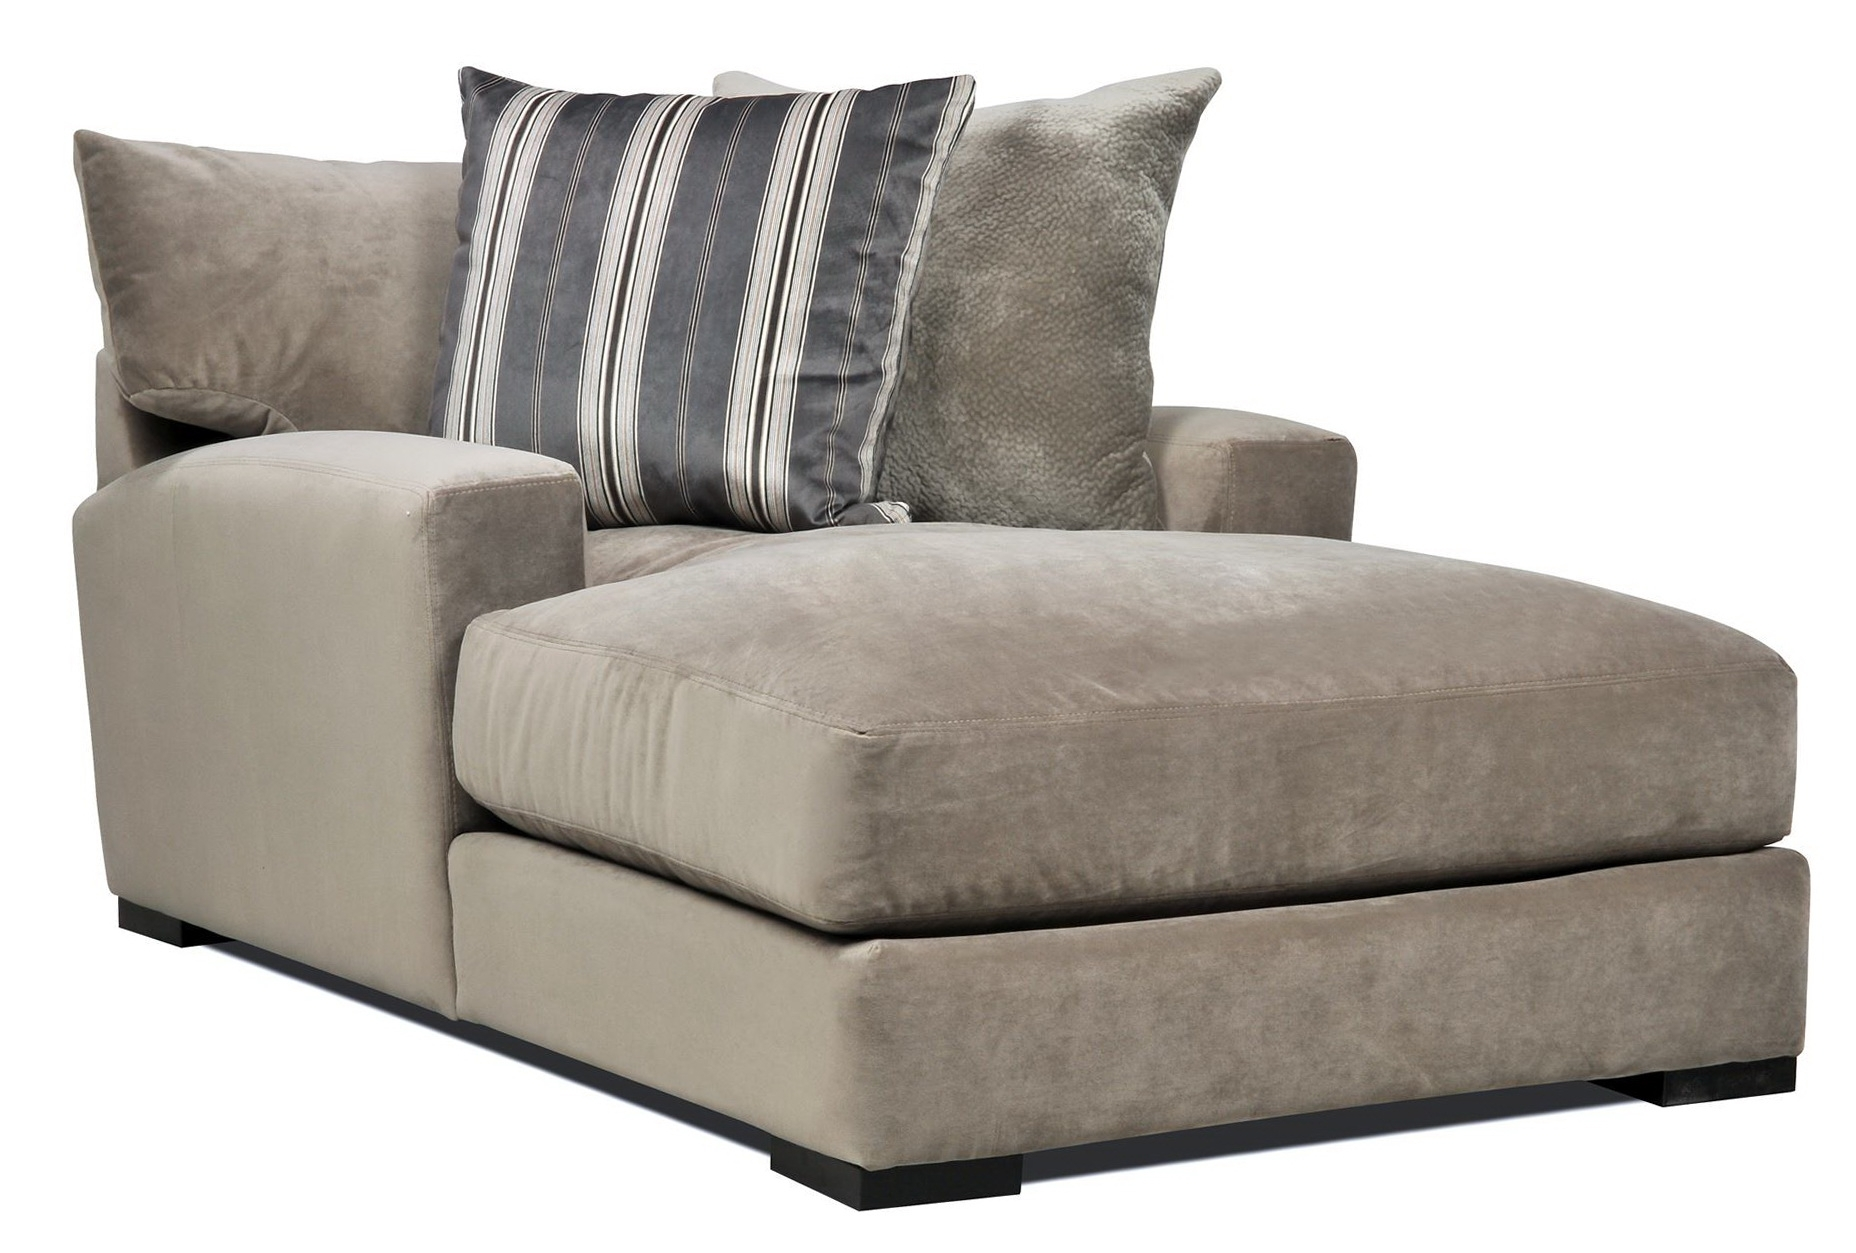 Preferred Microfiber Chaise Lounge Chairs For Double Wide Chaise Lounge Indoor With 2 Cushions (View 9 of 15)